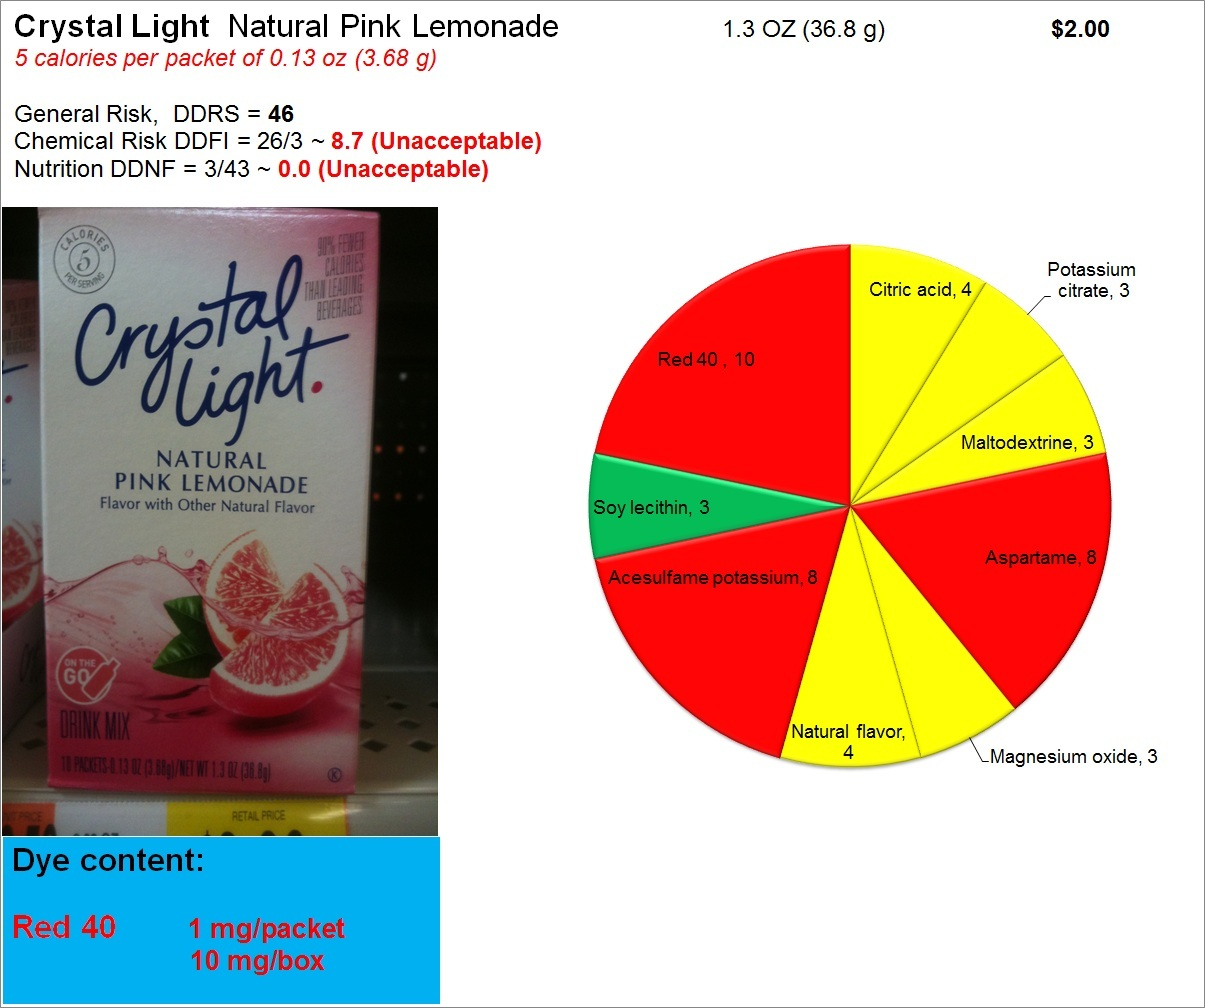 Captivating Crystal Light: Risk, Nutrition And Dye Content